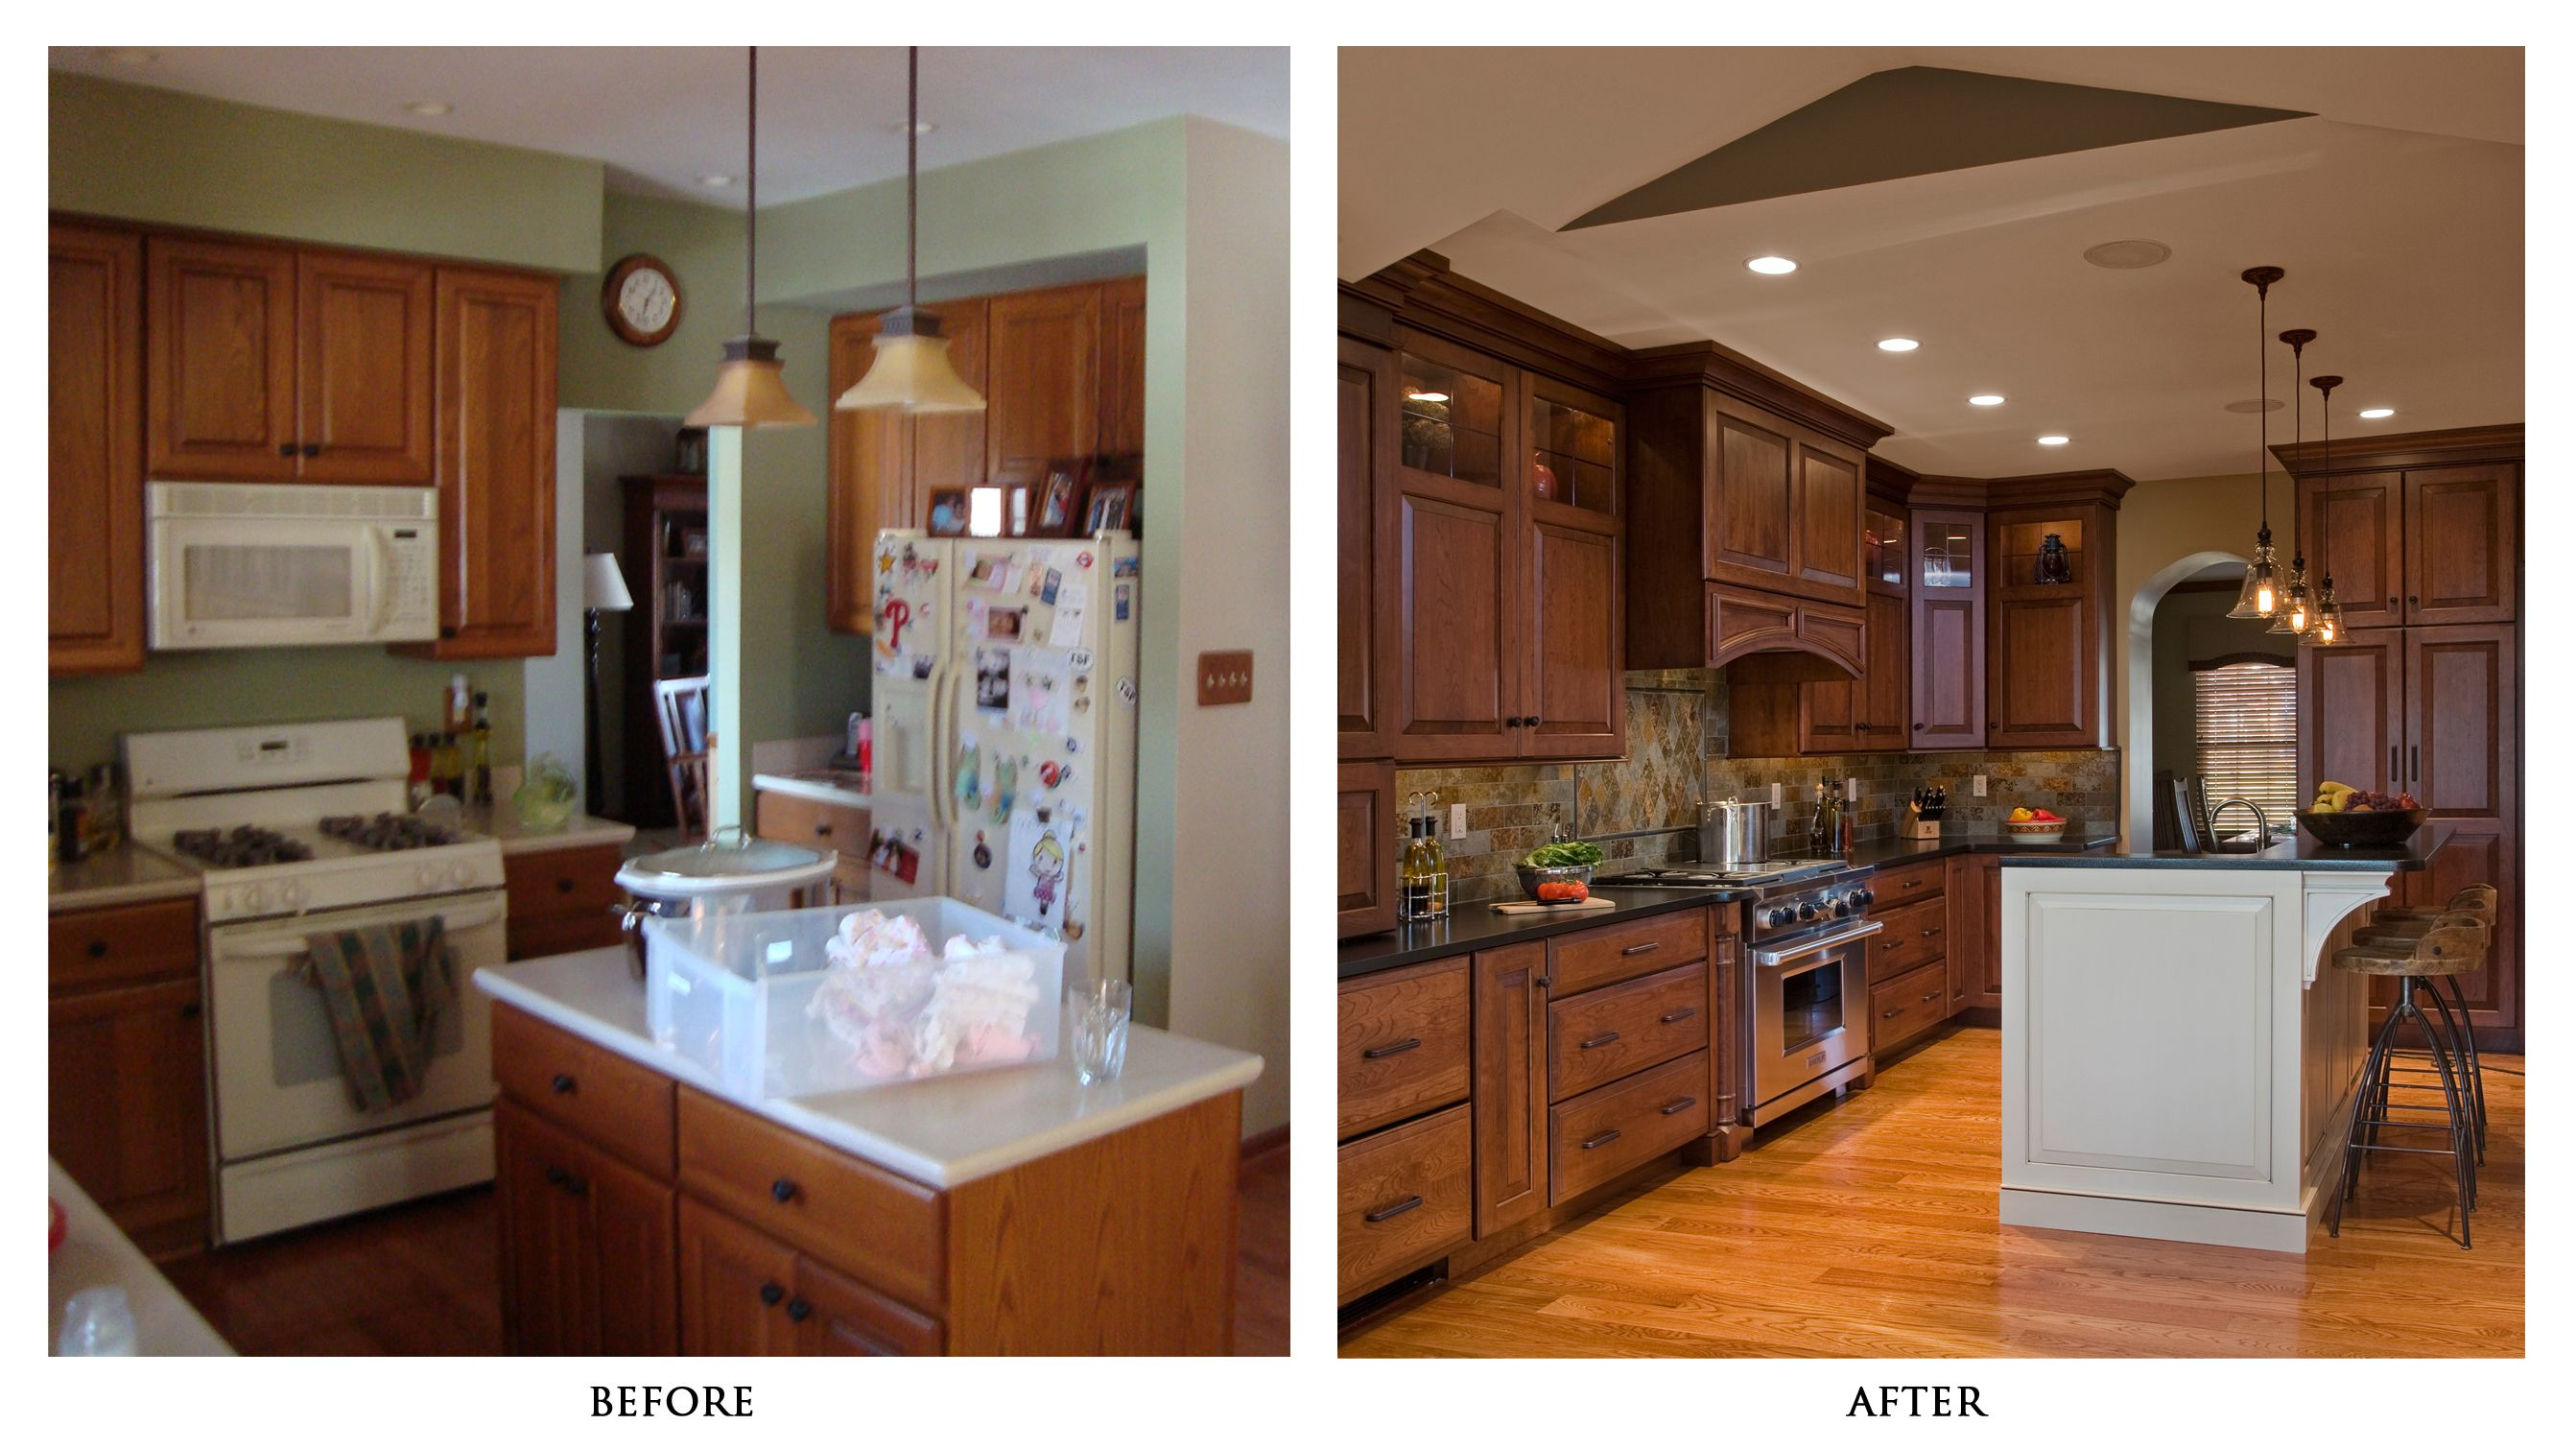 Remodeling A Small Kitchen Before And After kitchen remodels before and after photos | kitchen | pinterest